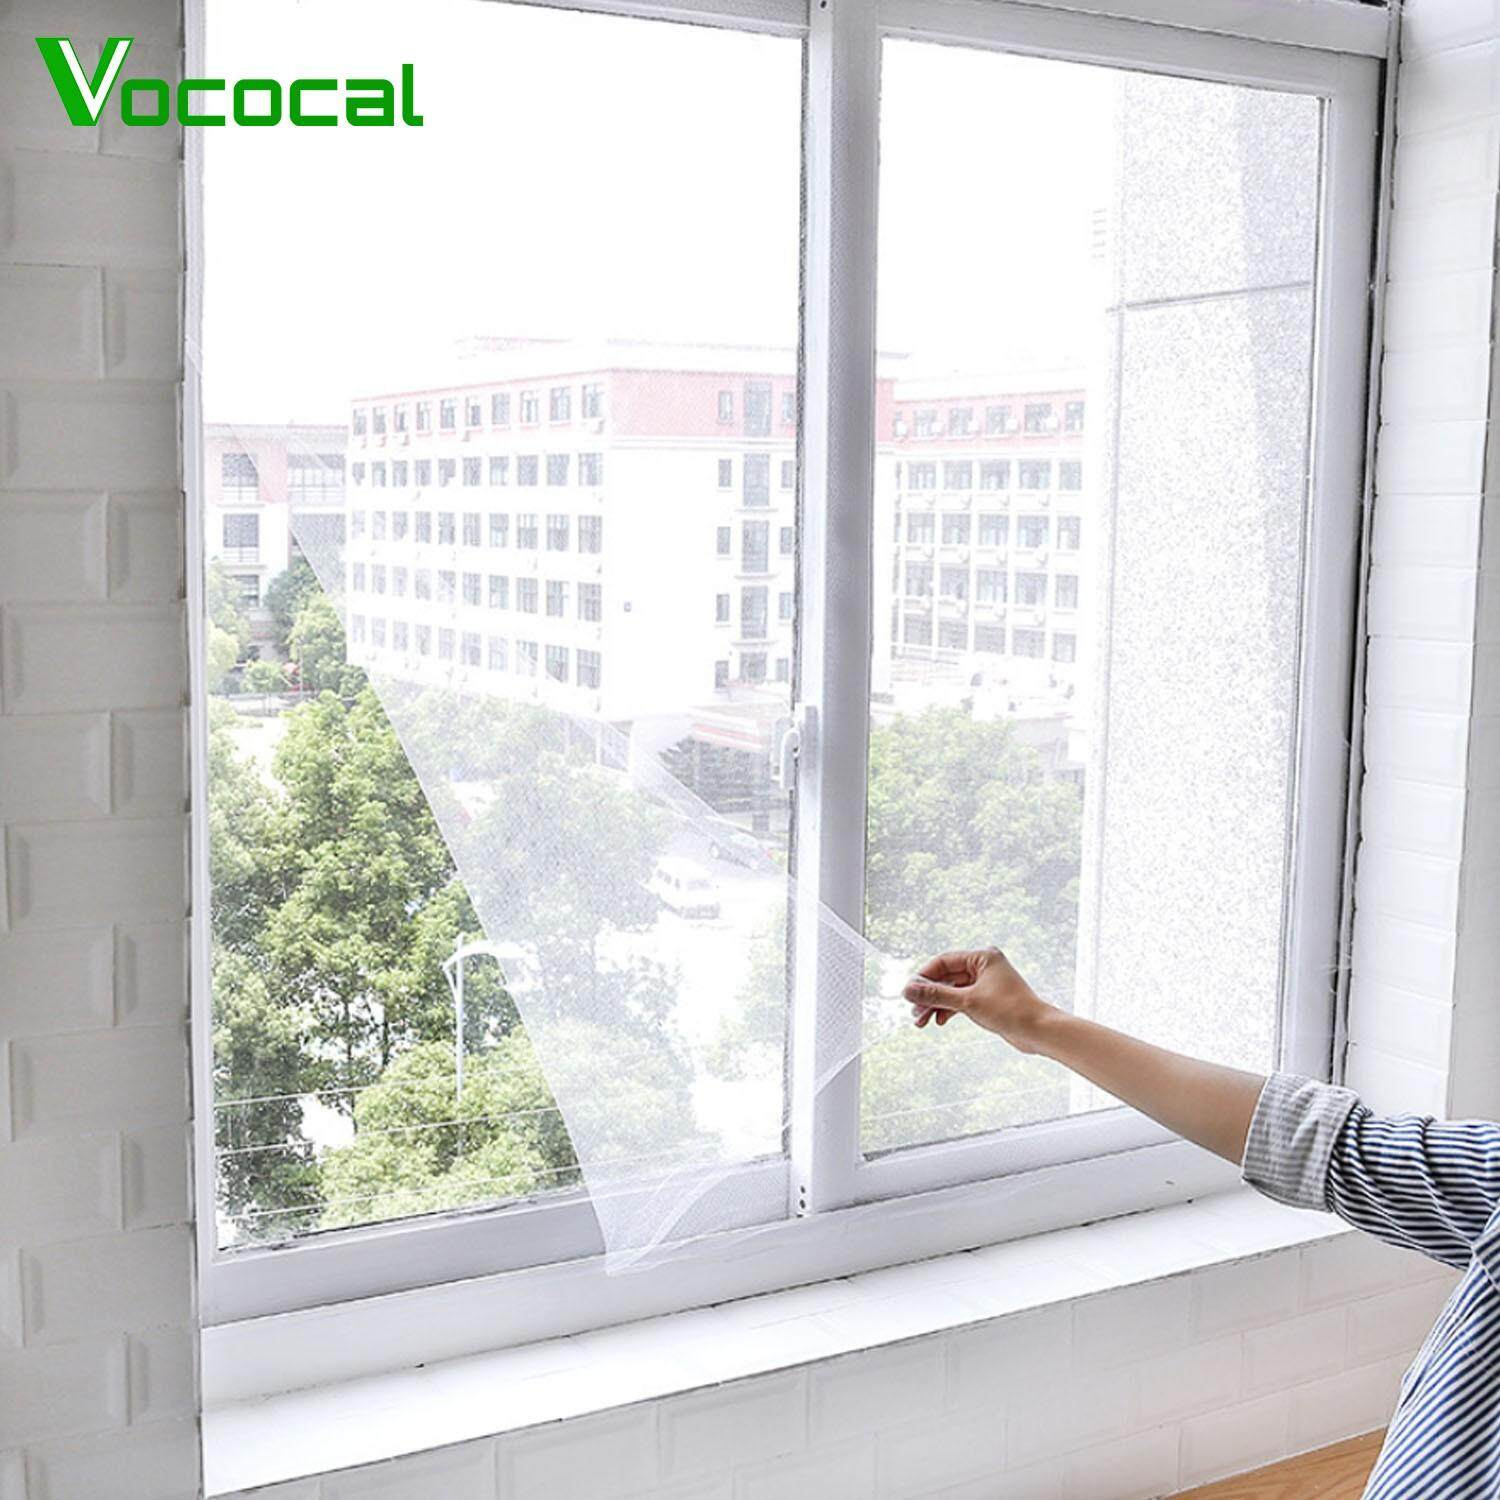 【In stock】Vococal 2PCS 1 5 x 2m DIY Self-adhesive Window Screen Netting  Mesh Curtain with Hook and Loop Fastener Tape Invisible Insect Mesh Kit